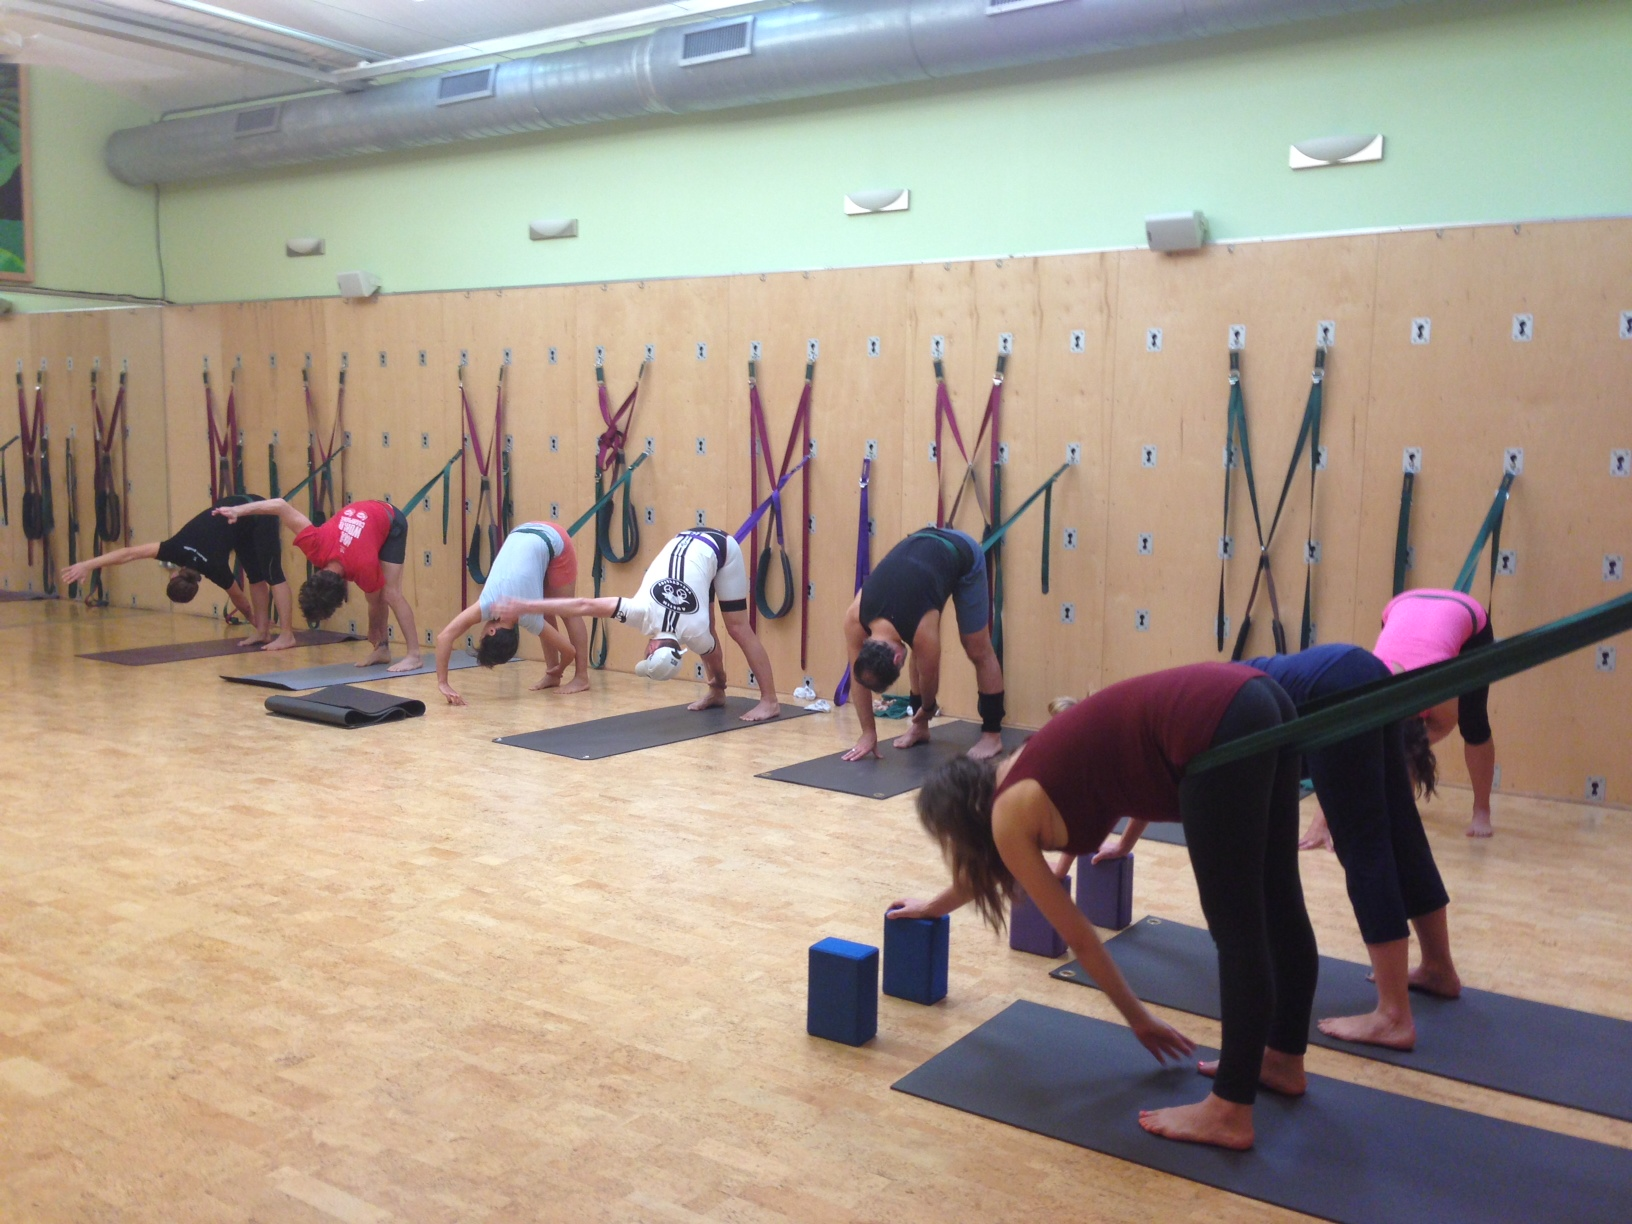 Yoga Wall class led by Castle Hill instructor Gillian Barksdale